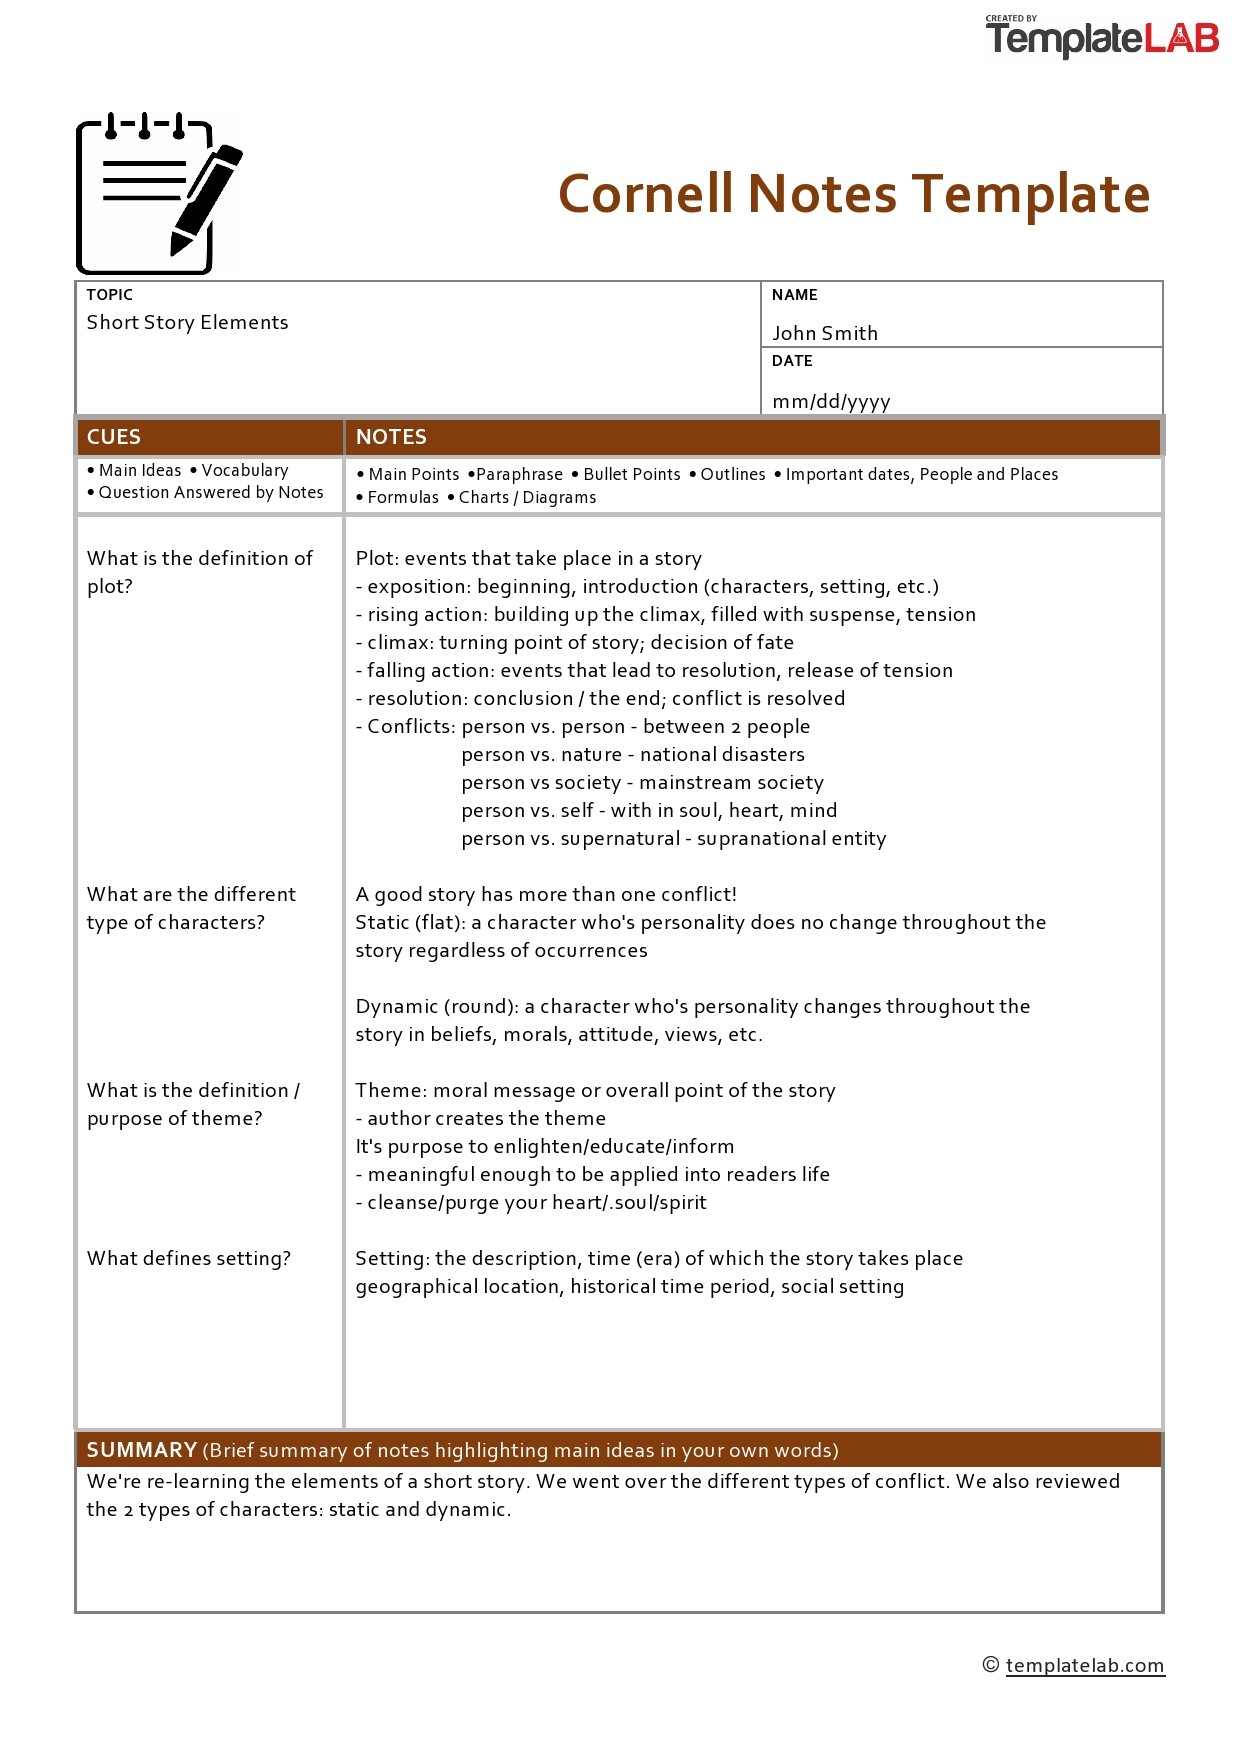 Free Cornell Notes Template 2 - TemplateLab